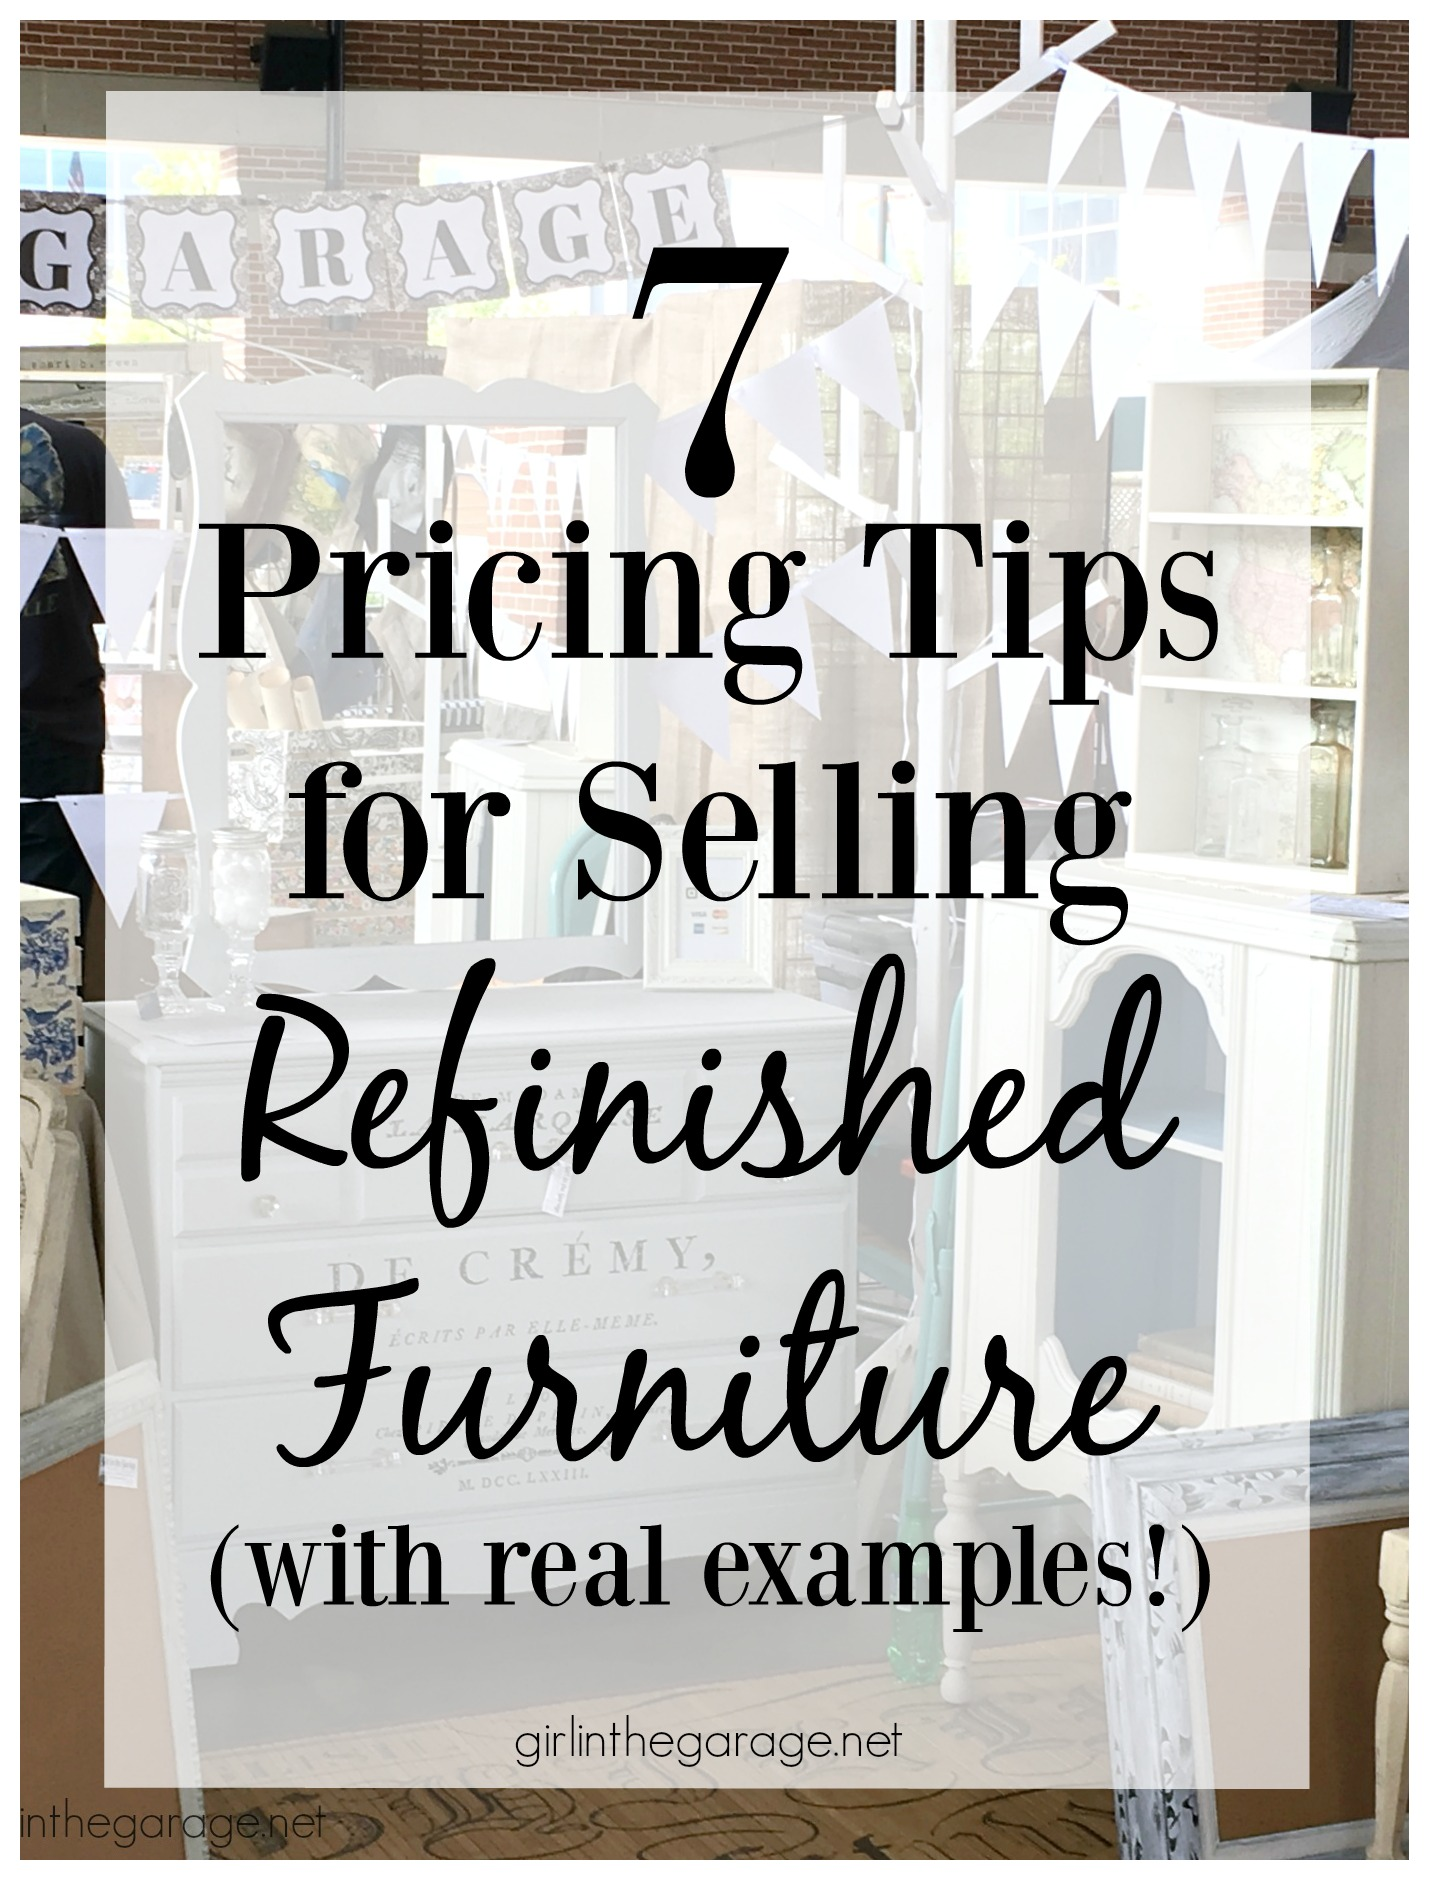 Pricing tips for selling refinished furniture (with examples!) - Girl in the Garage